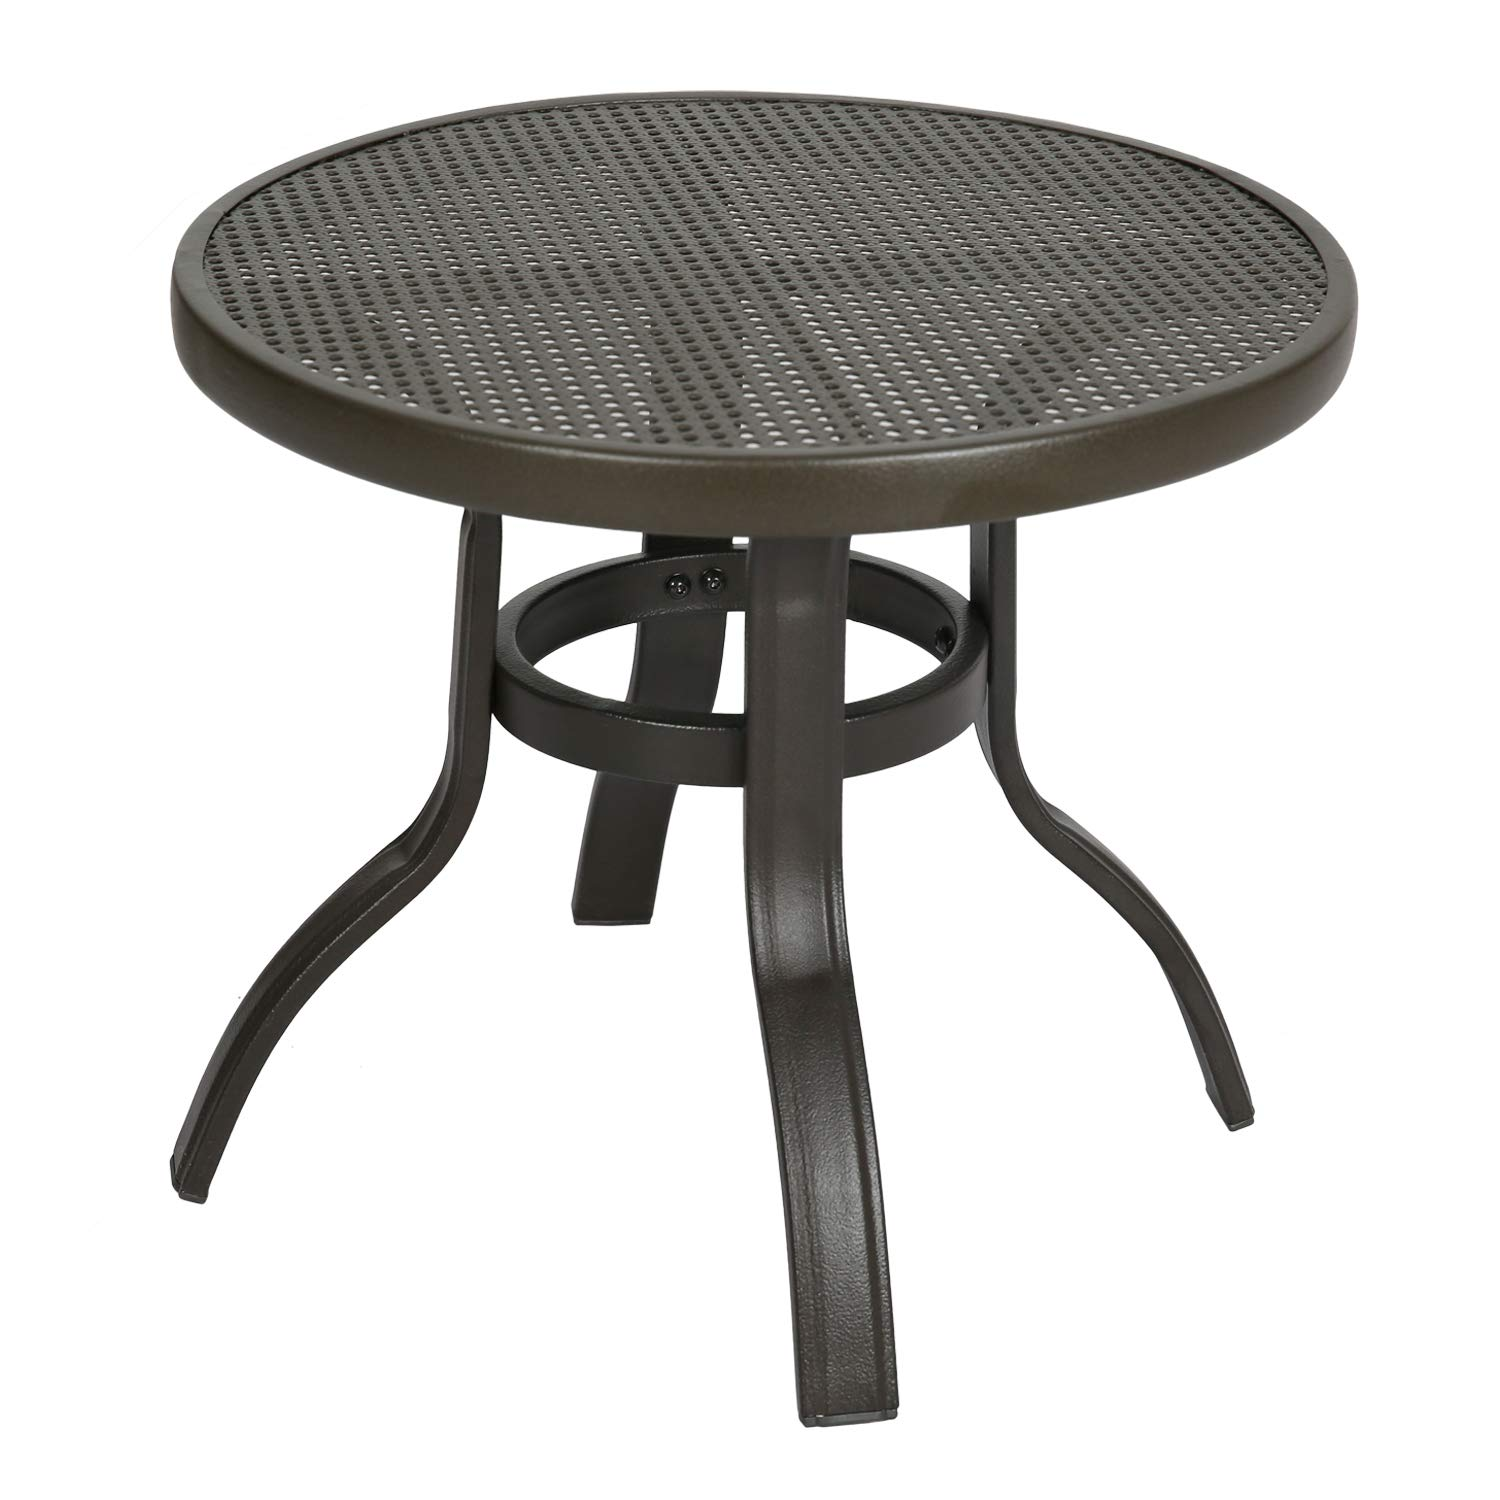 Ulax Furniture 3 Piece Outdoor Wicker Set Patio Conversation Bistro Set with Chairs and Side Table